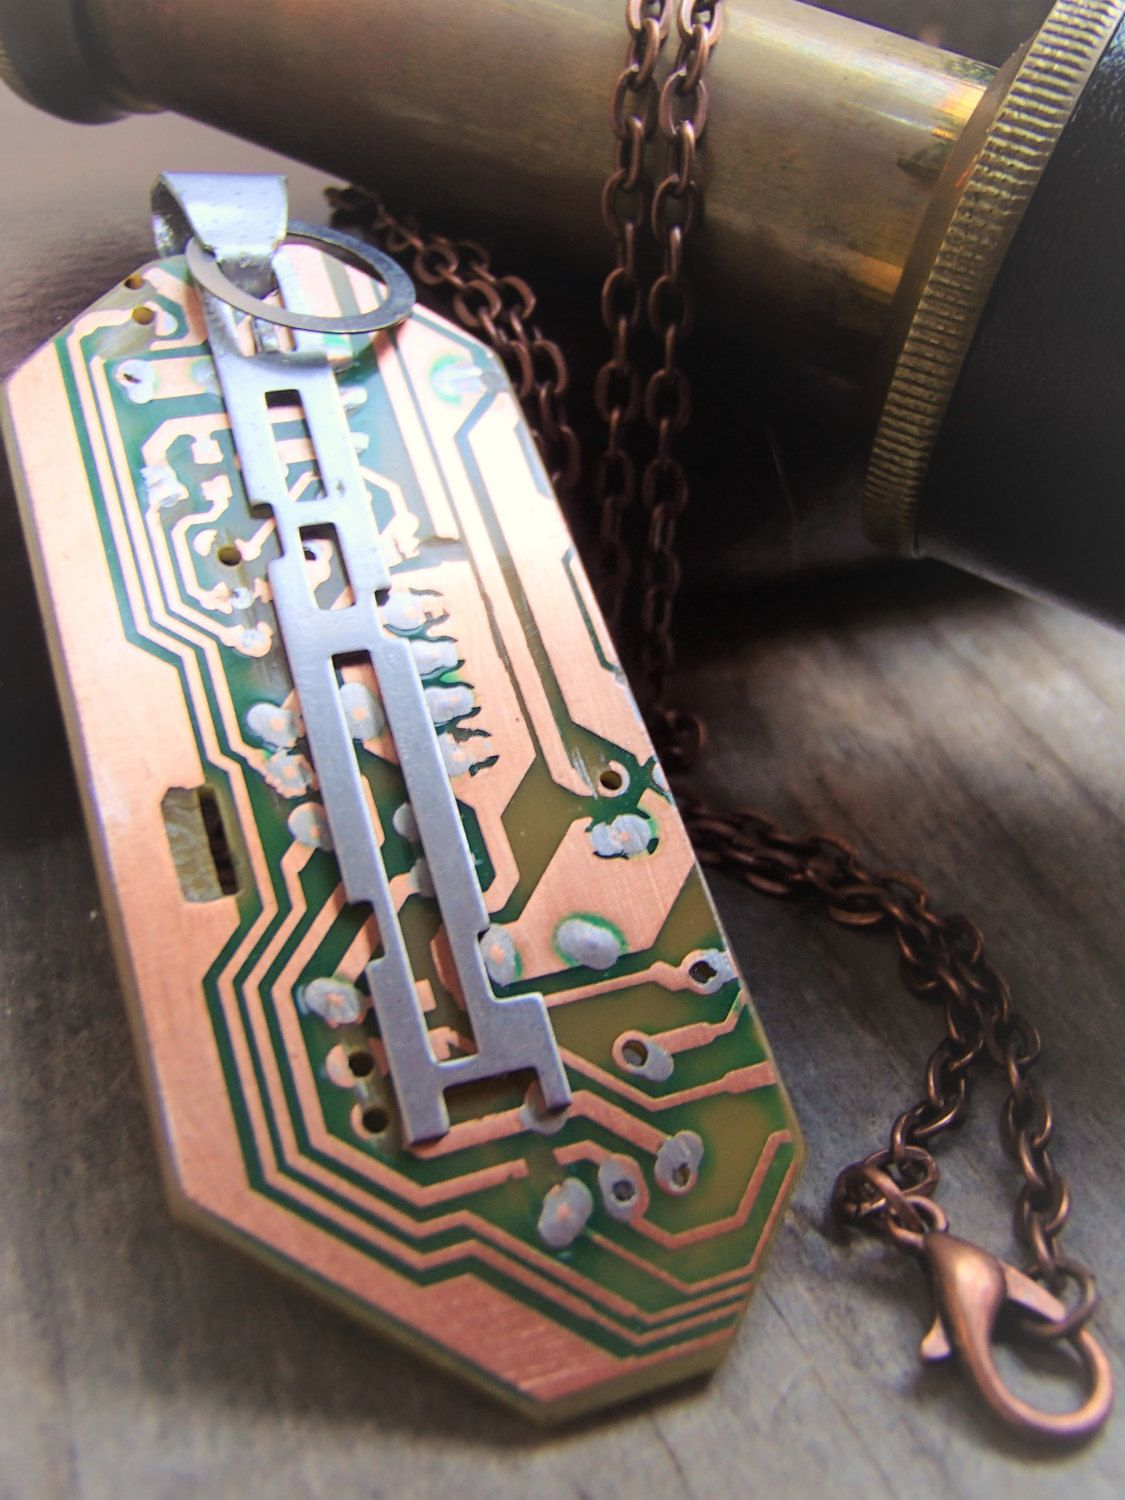 Recycled Circuit Board Pendant Copper Circuitry Accent Dangle Of Parts Constructed From Salvaged Computer And Aluminum Accents Free Ship In Us By Muchadoaboutjunkin On